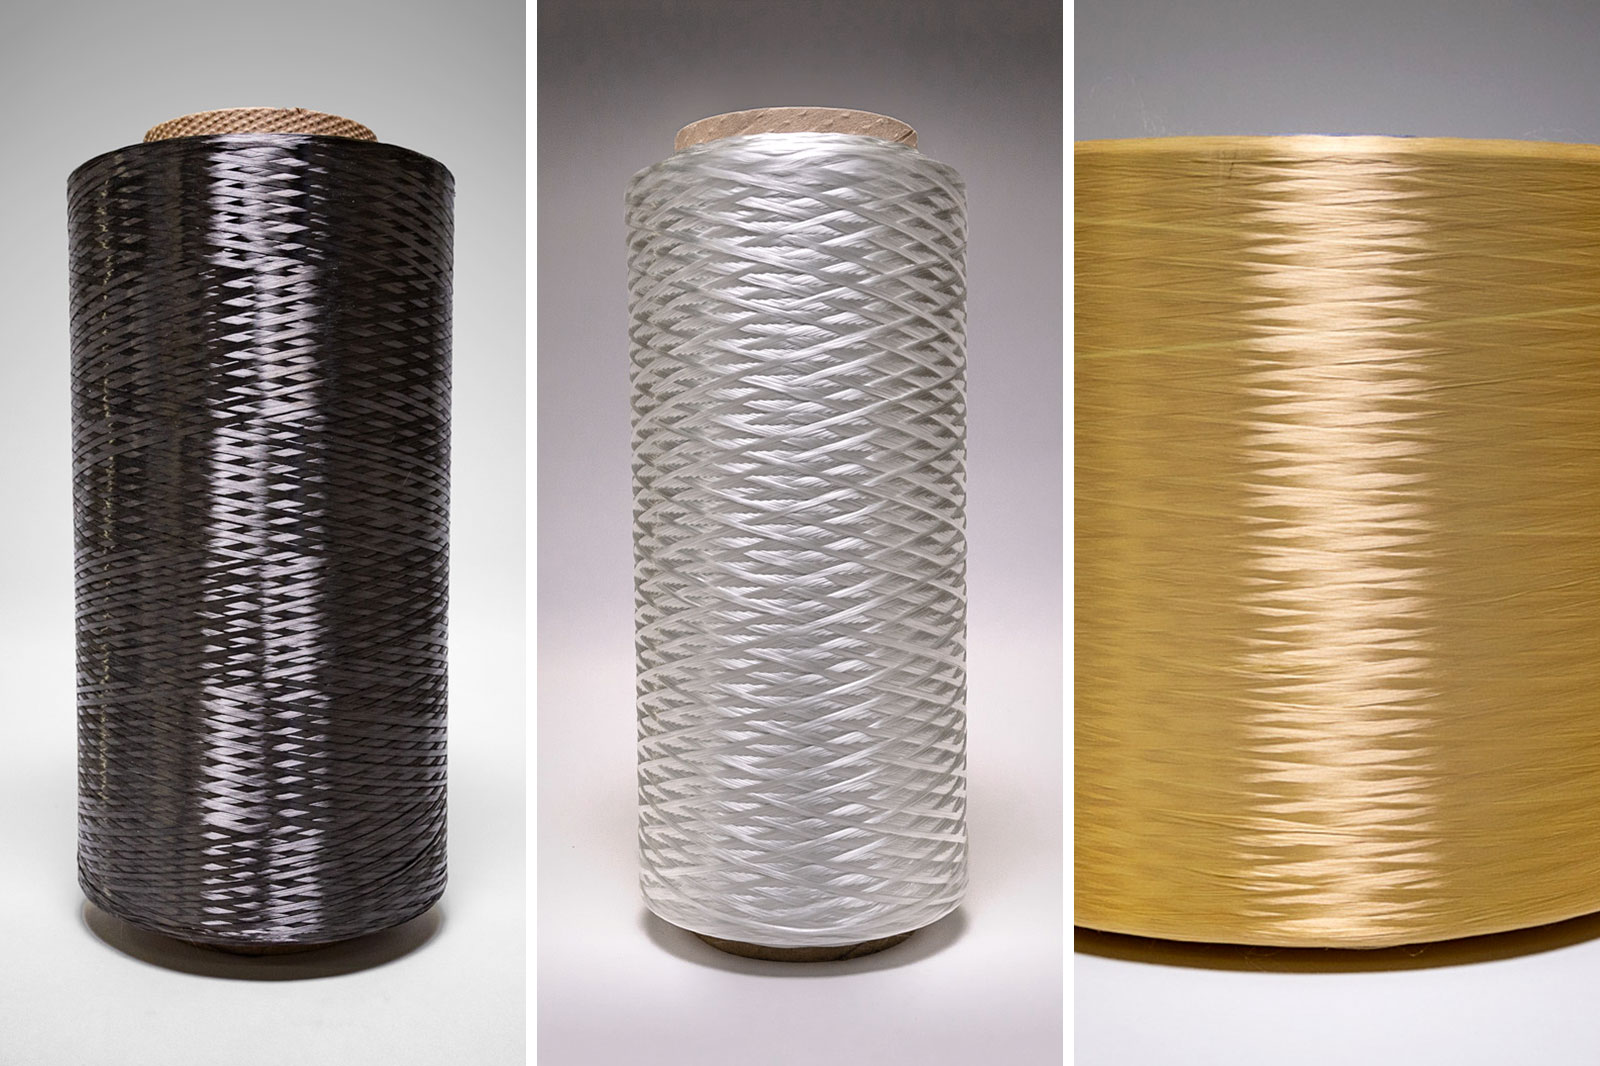 Image of three dry continuous fiber spools. Carbon fiber, fiberglass, and kevlar.